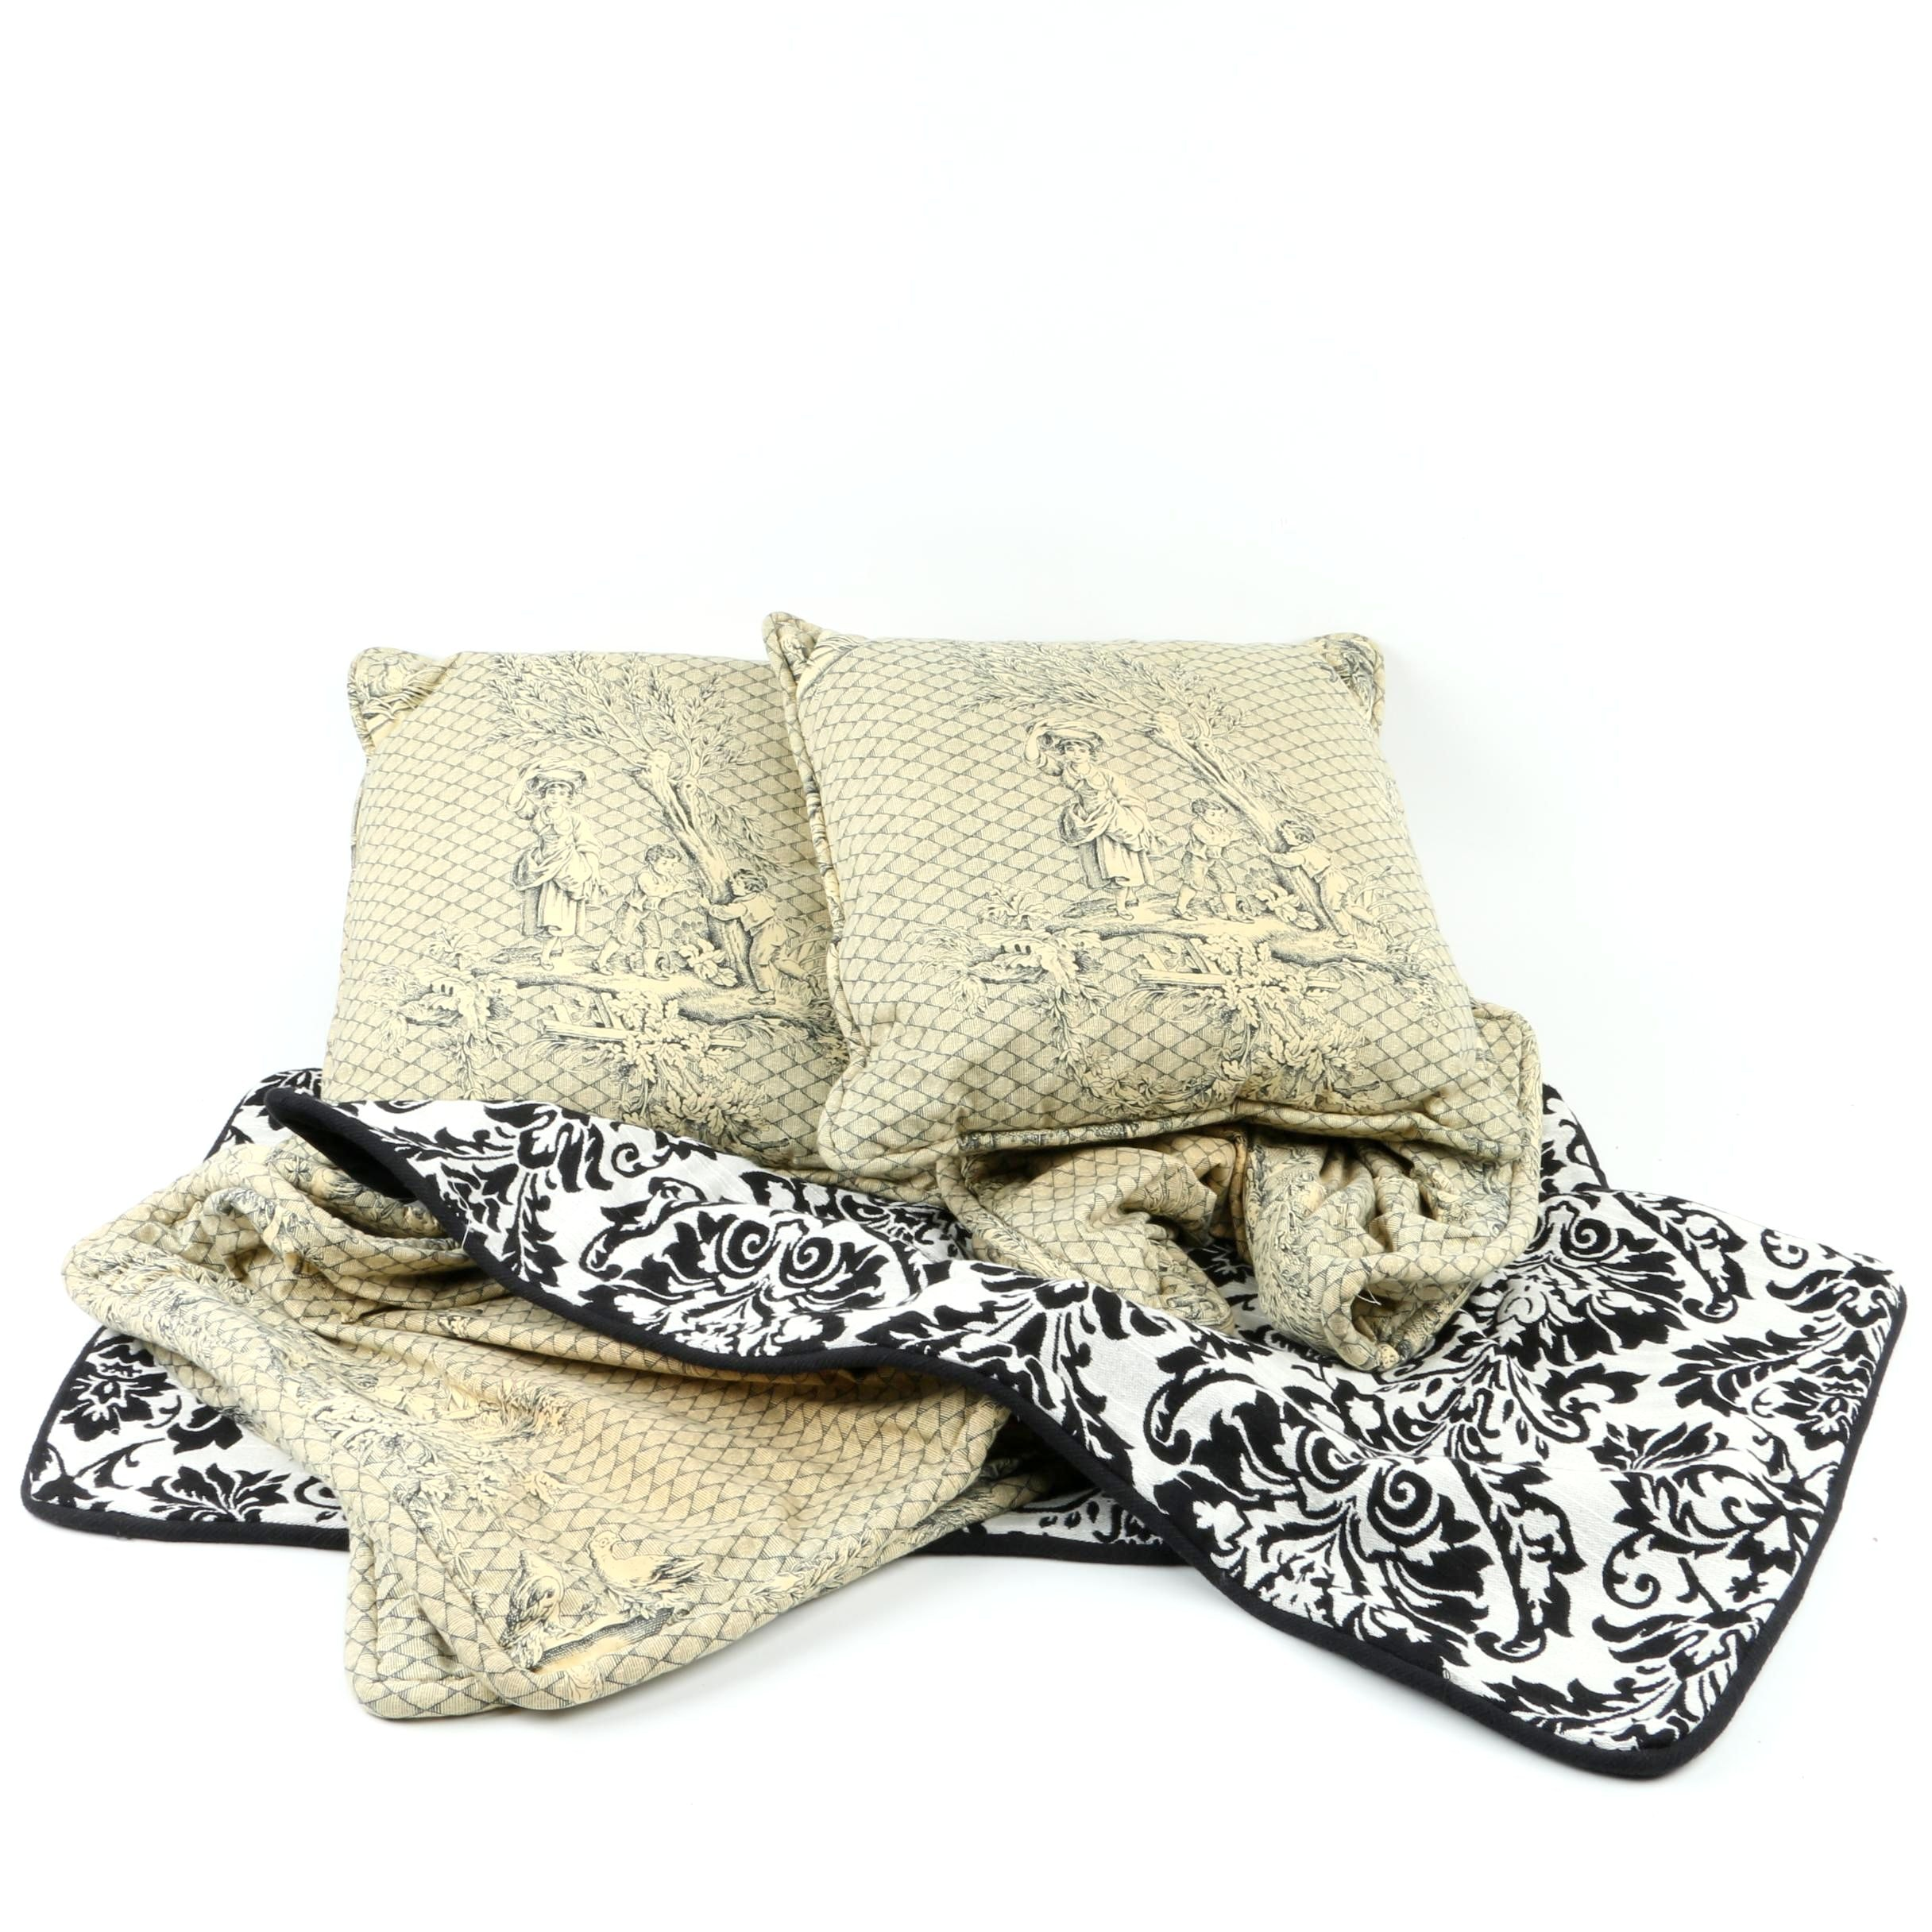 Collection of Decorative Pillows and Cases